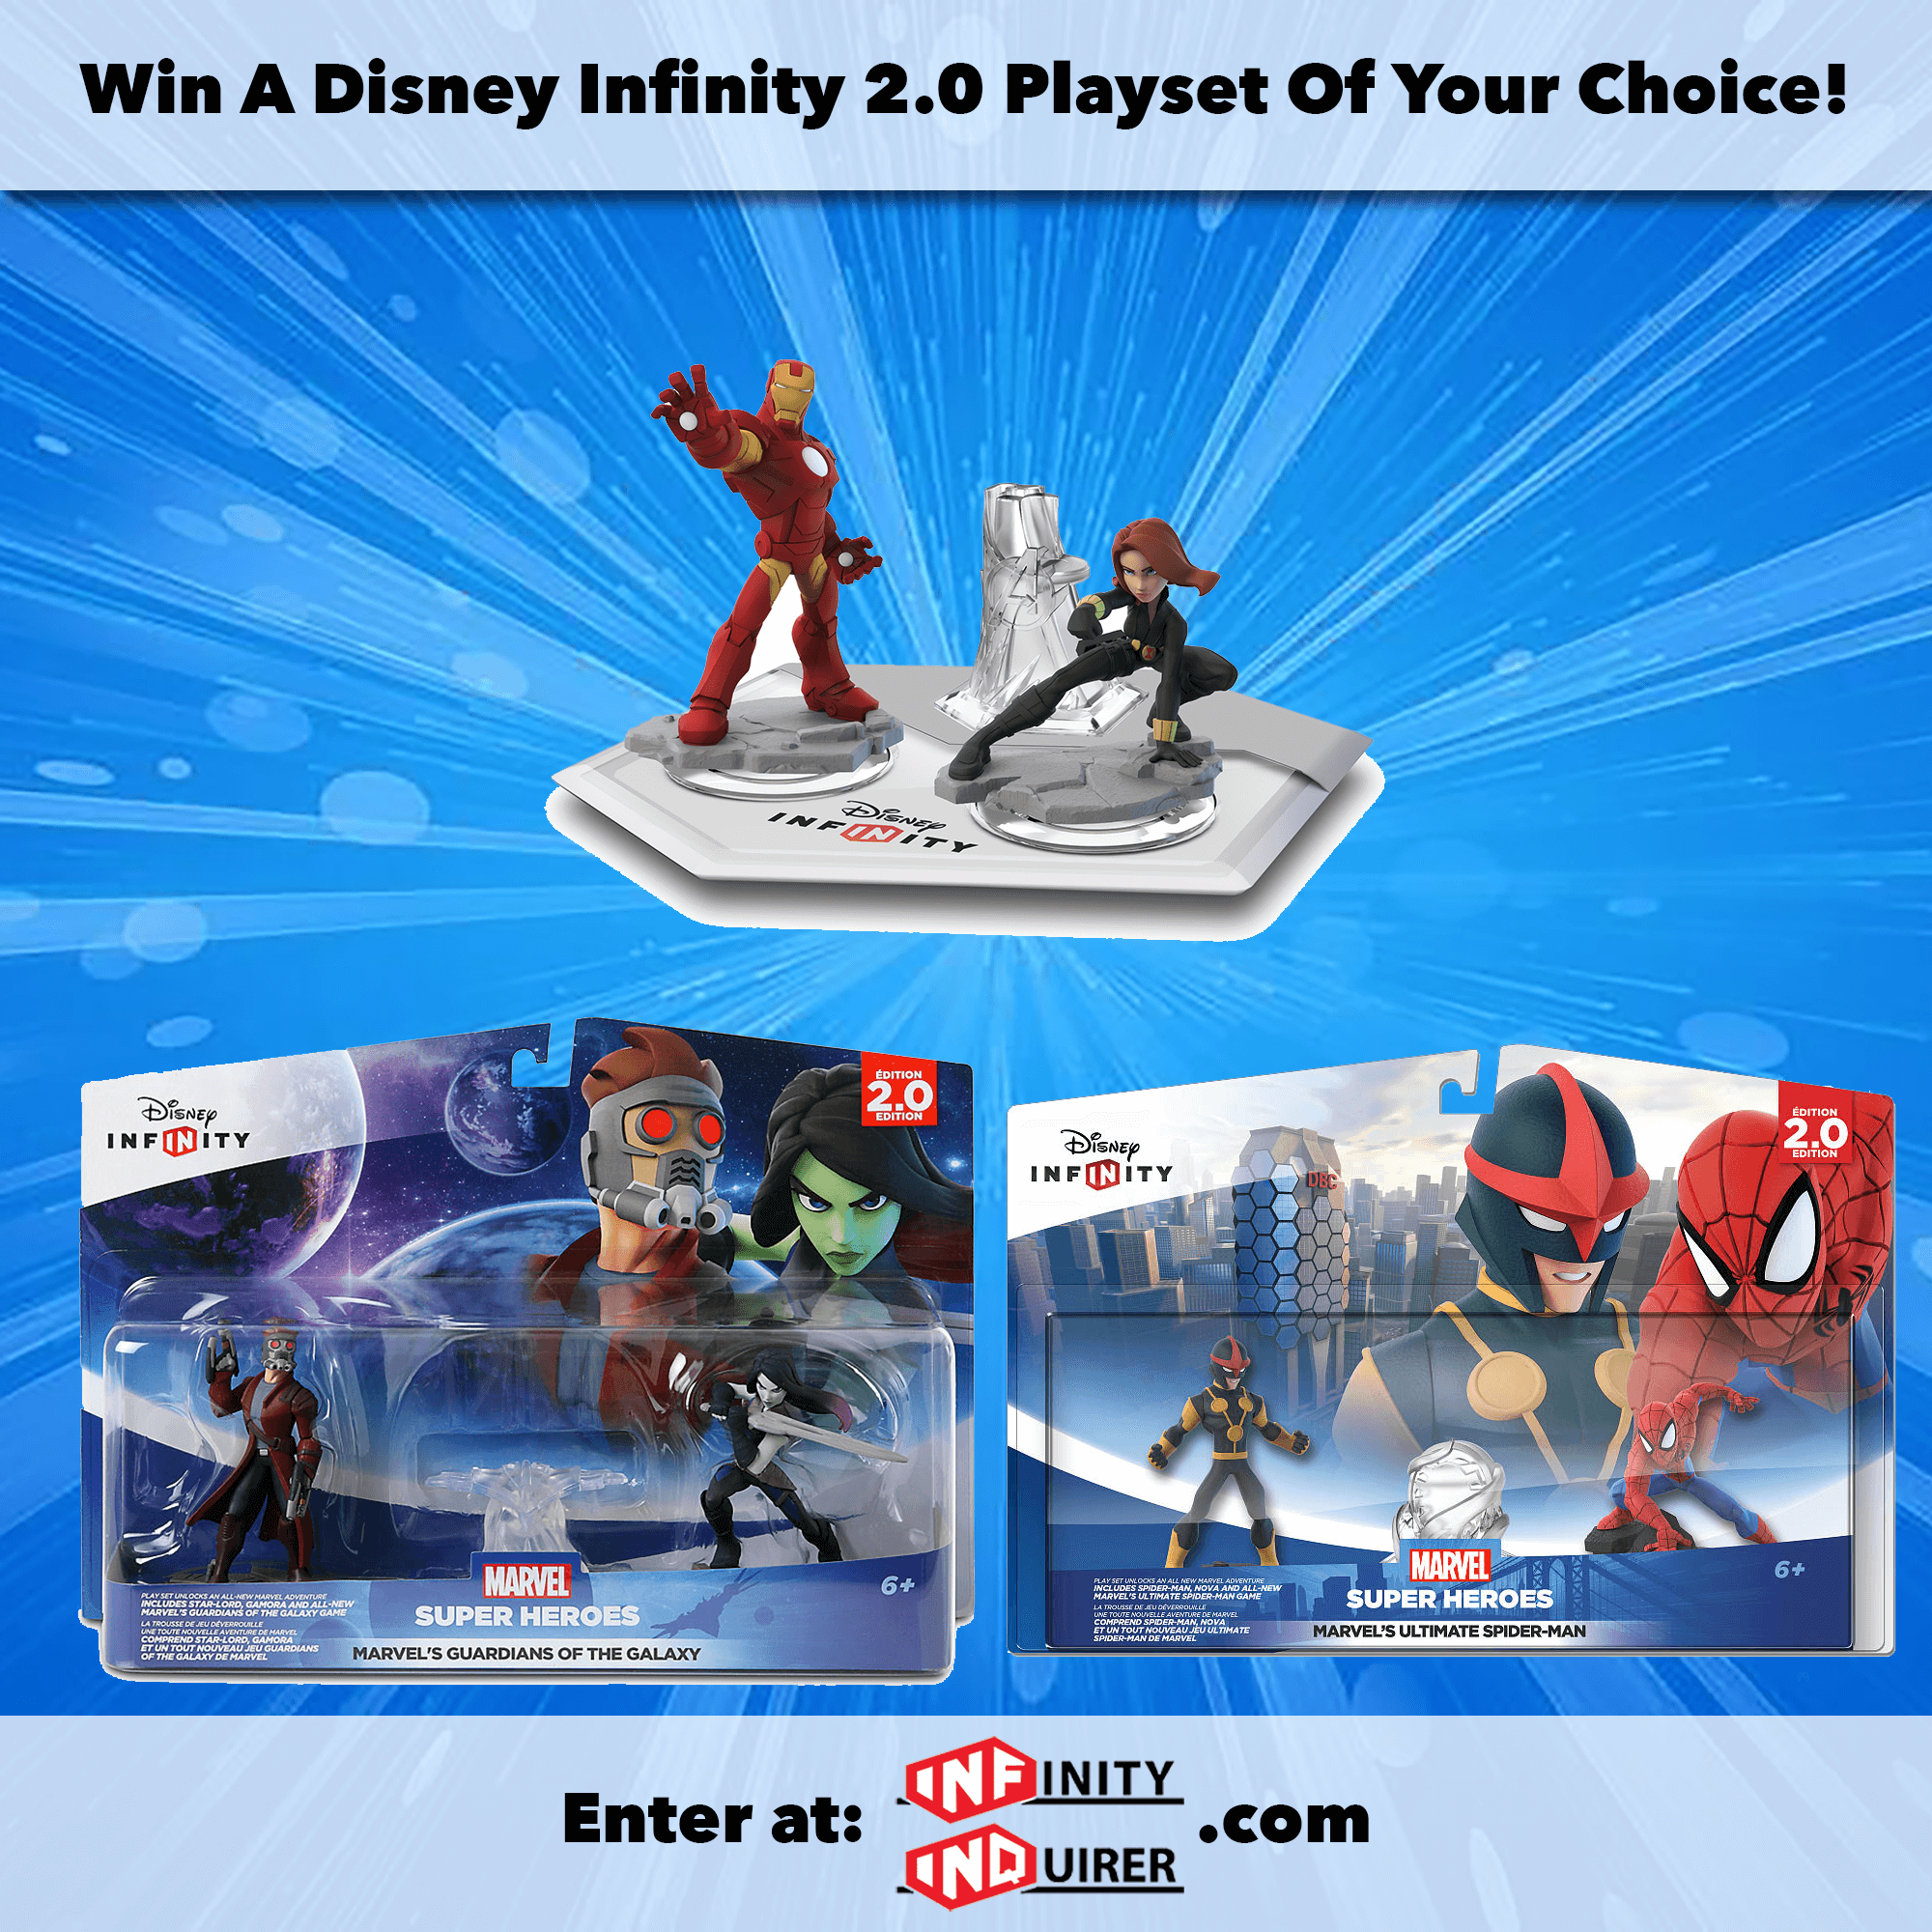 new structure marvel man made for money a released fist techno out spider infinity your will nova venom and figures entirely heroes super interactive of disney pictures gladly blog take has iron